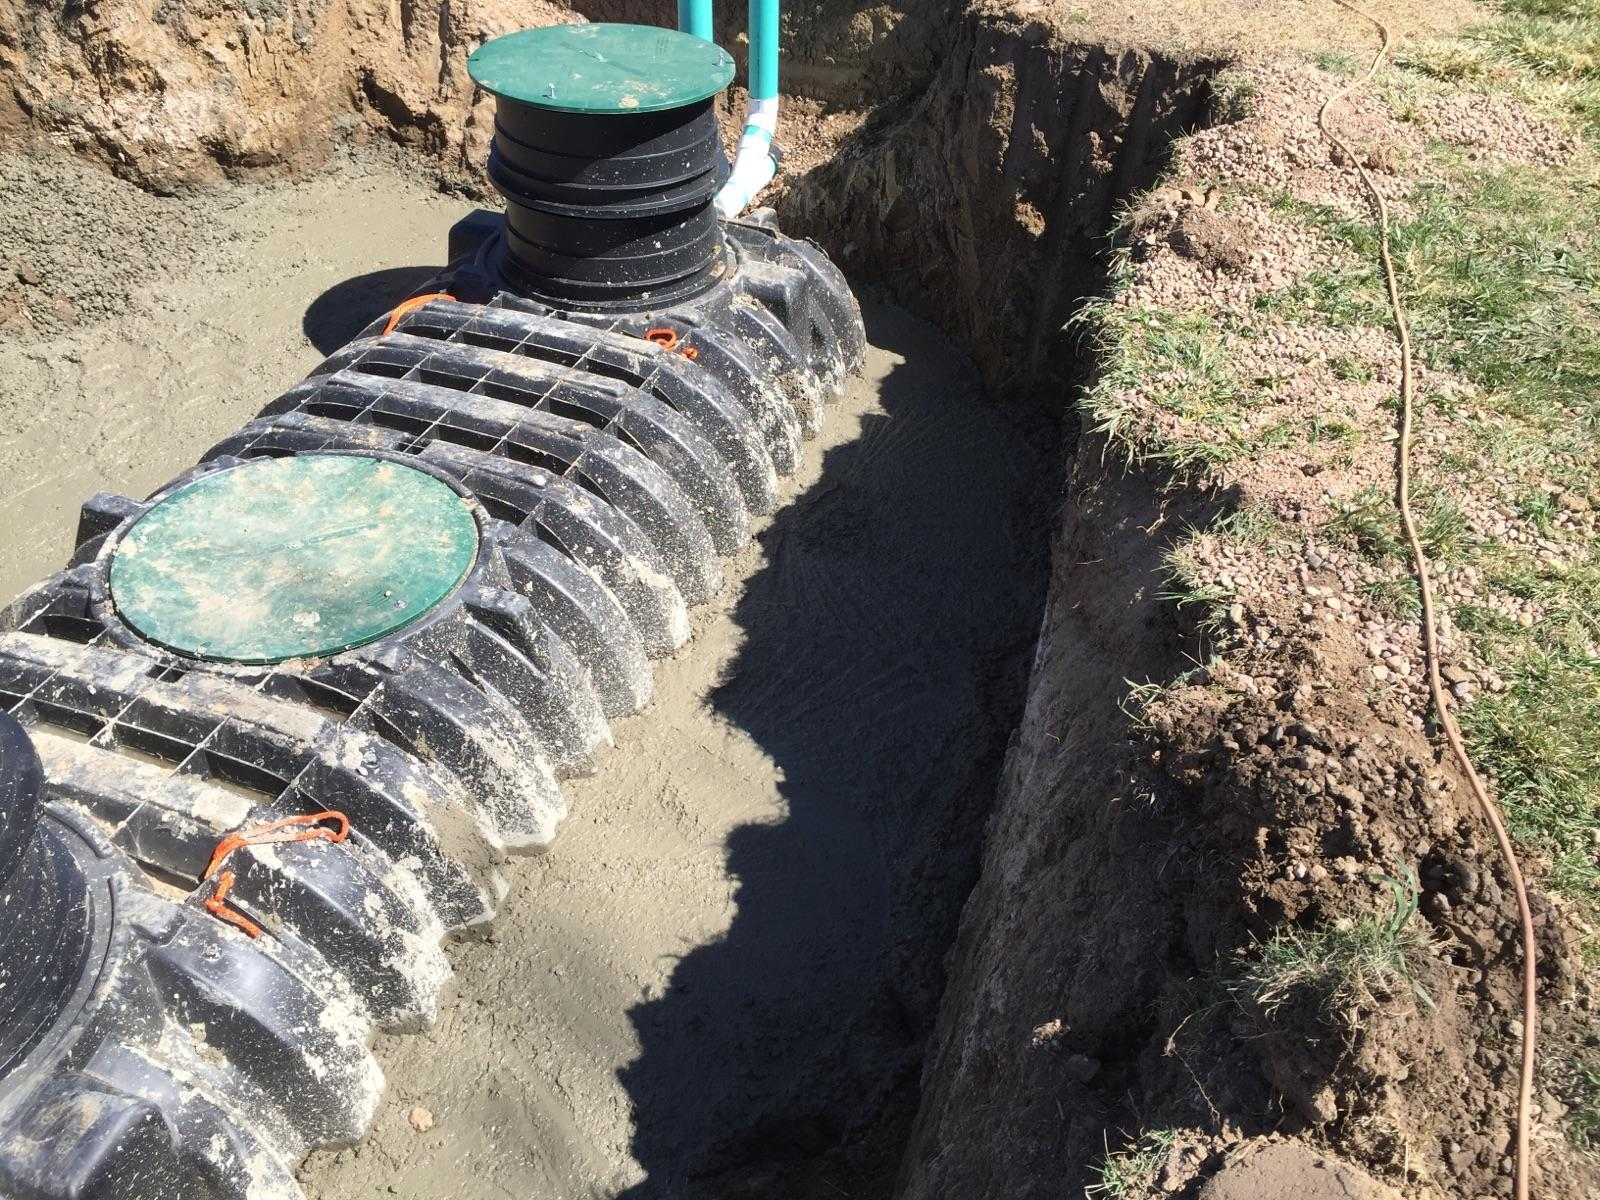 A concrete collar around a septic tank helps prevent it from floating in highly saturated soil.